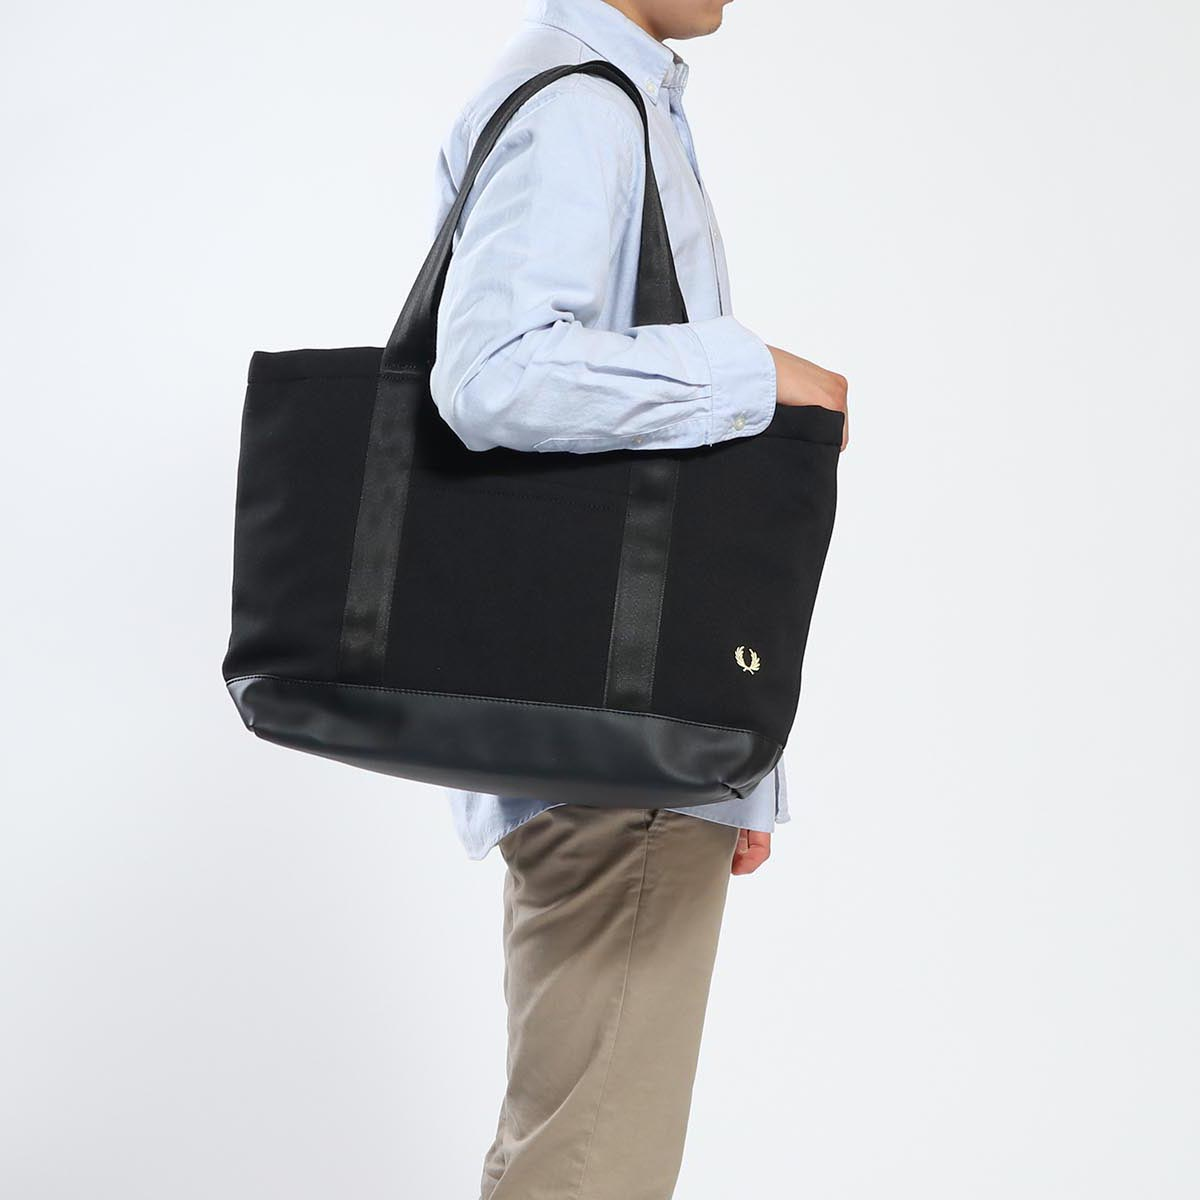 GALLERIA Bag-Luggage  Fred Perry bag FRED PERRY tote bag PIQUE TOTE BAG  Thoth attending school commuting B4 men gap Dis F9542  841c873fdbdf1